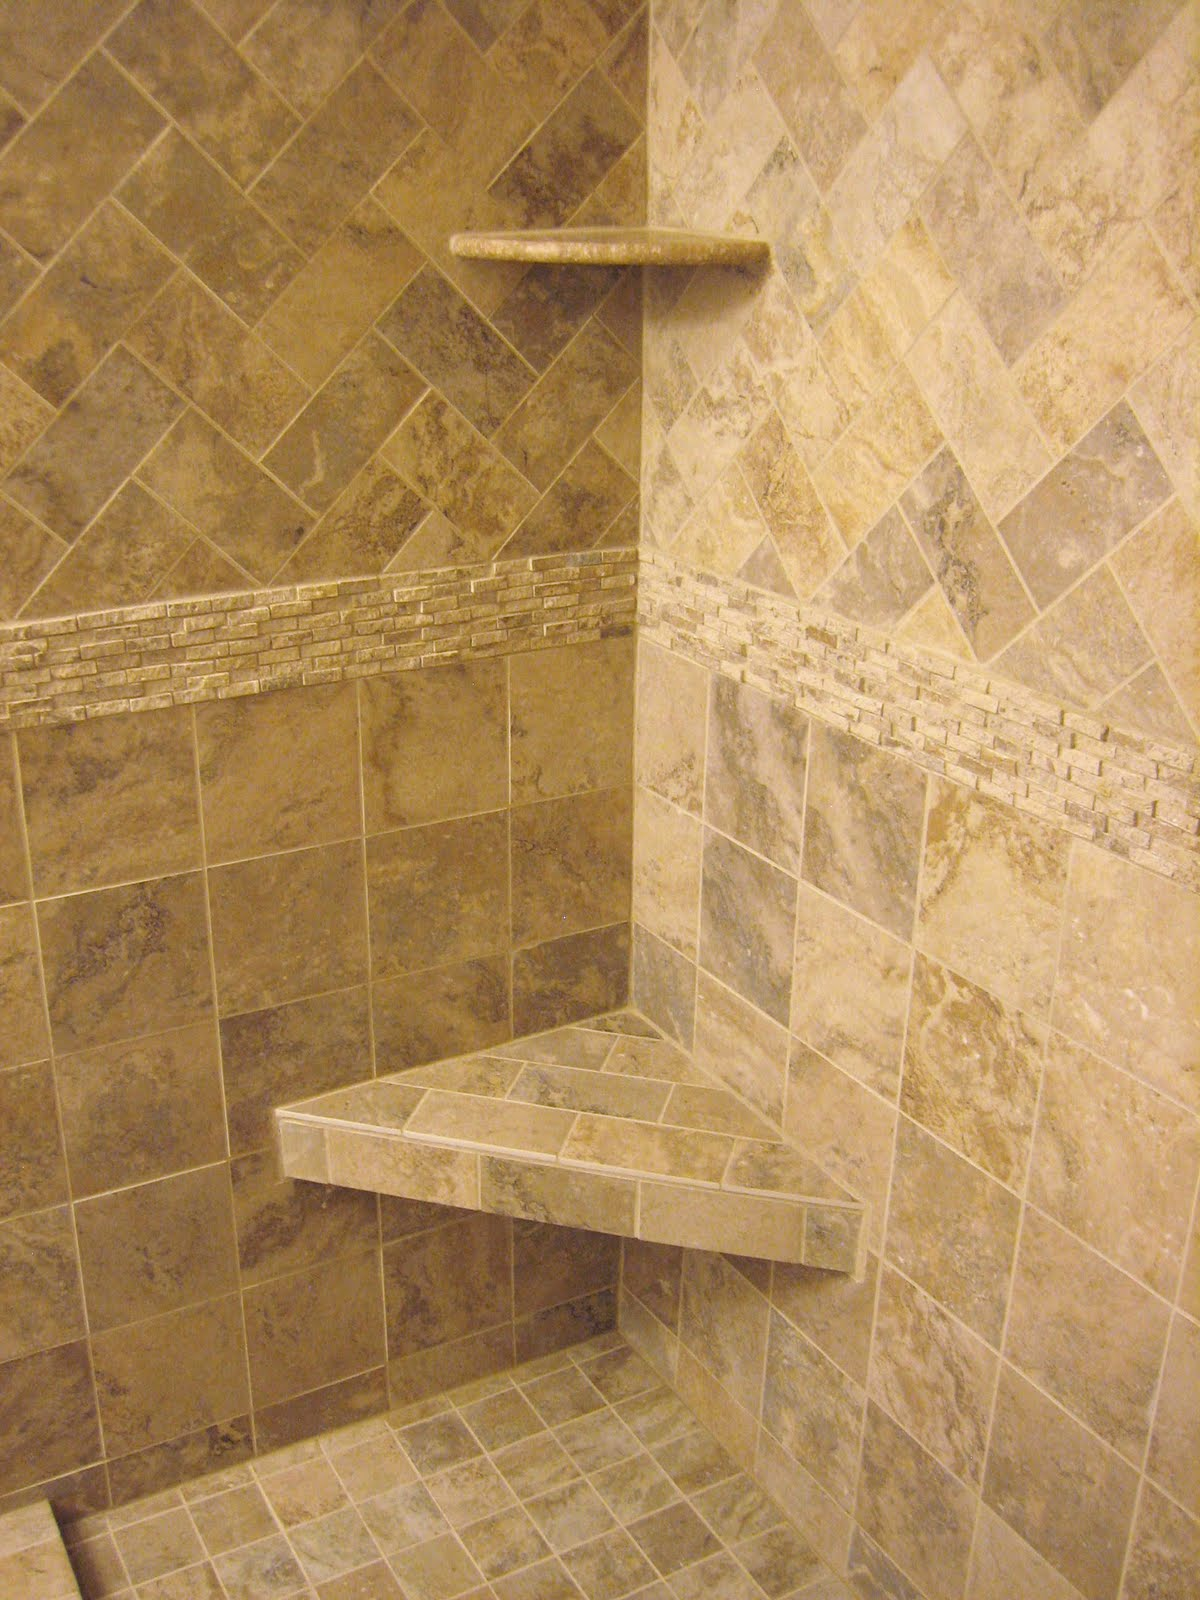 H winter showroom blog luxury master bath remodel athena for Tile shower bathroom ideas